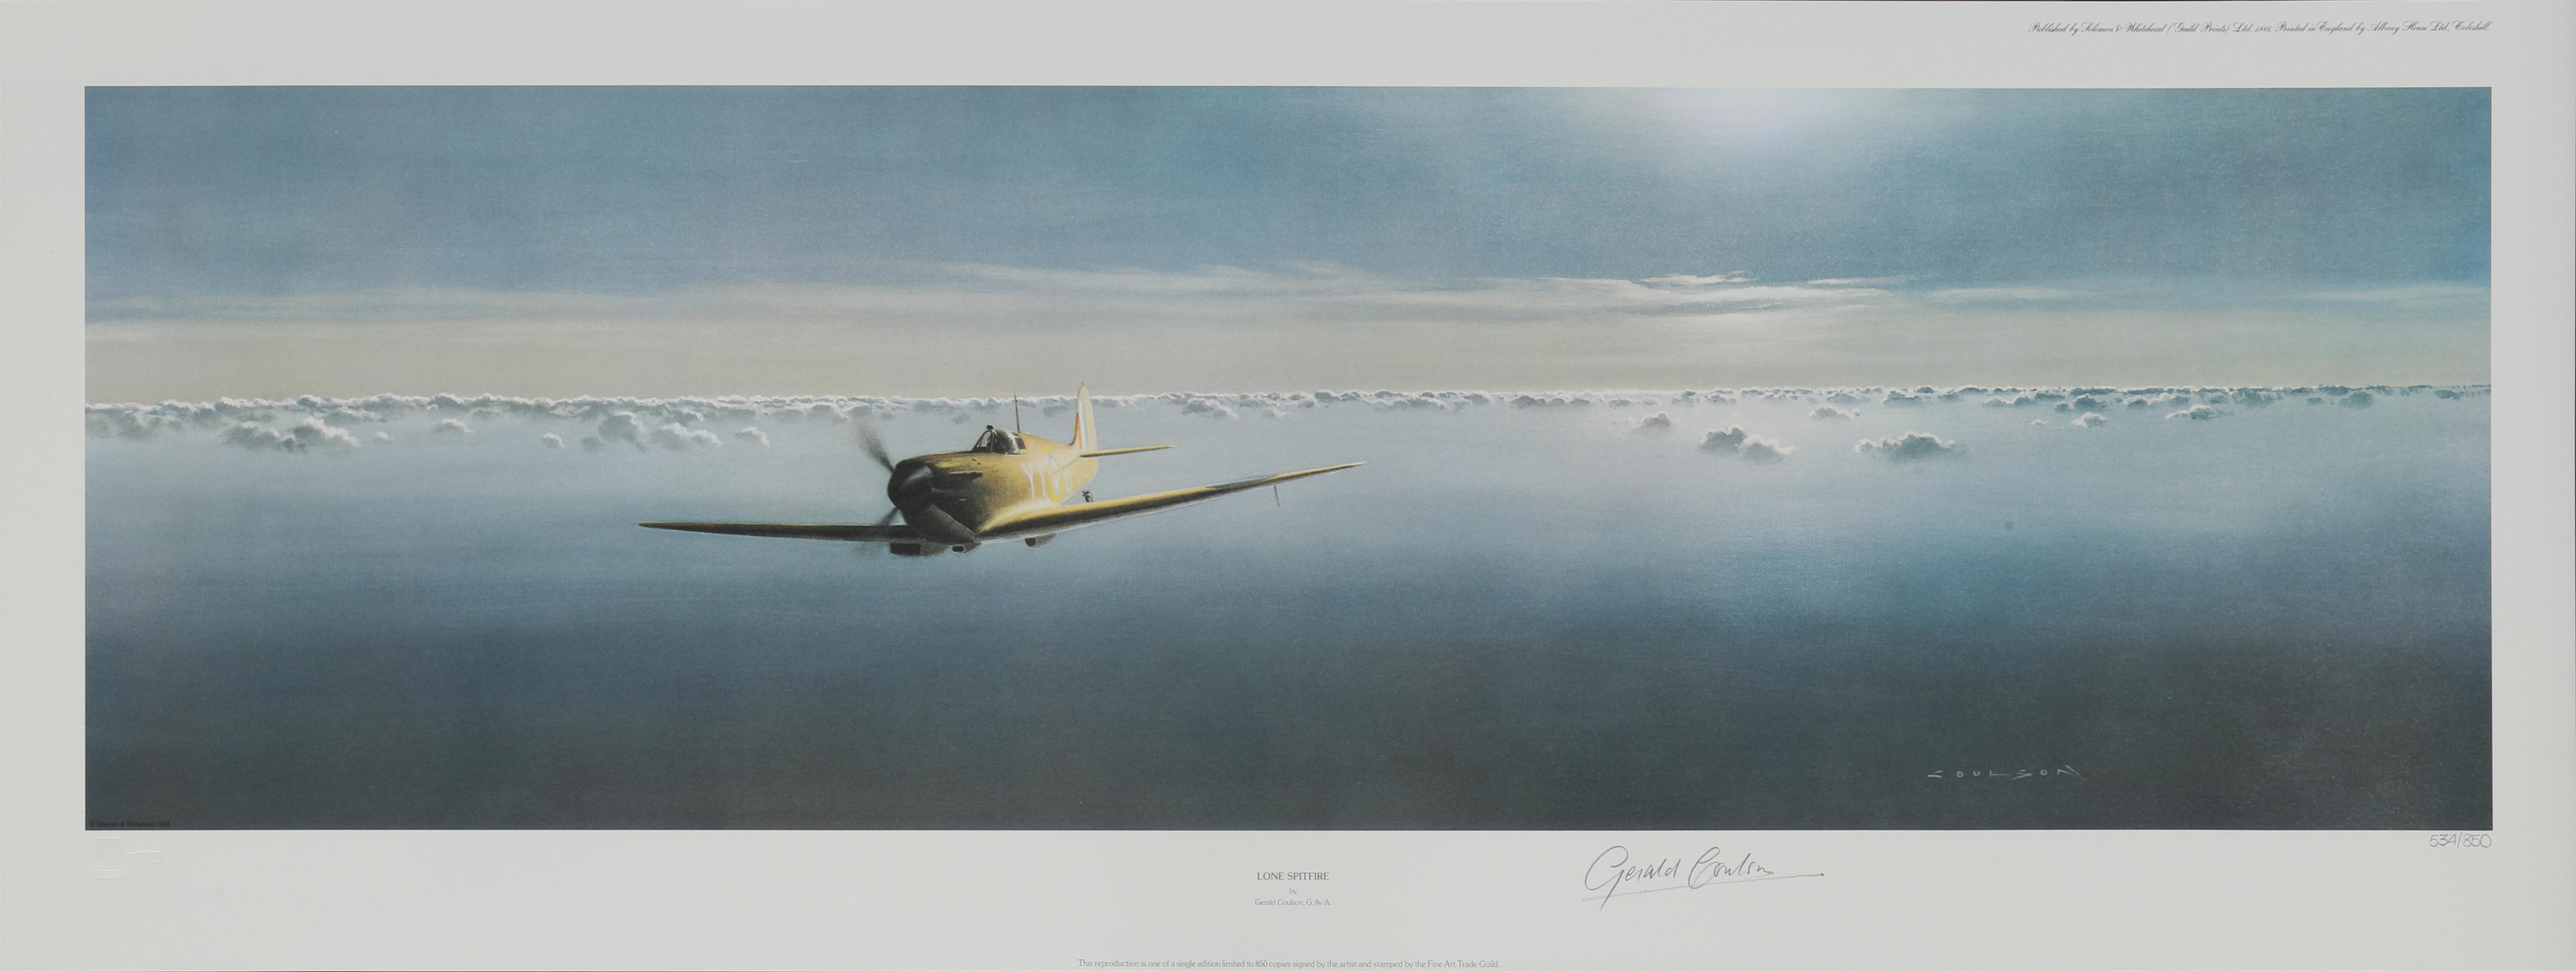 """Gerald Coulson's """"Lone Spitfire"""" Limited Edition Print"""